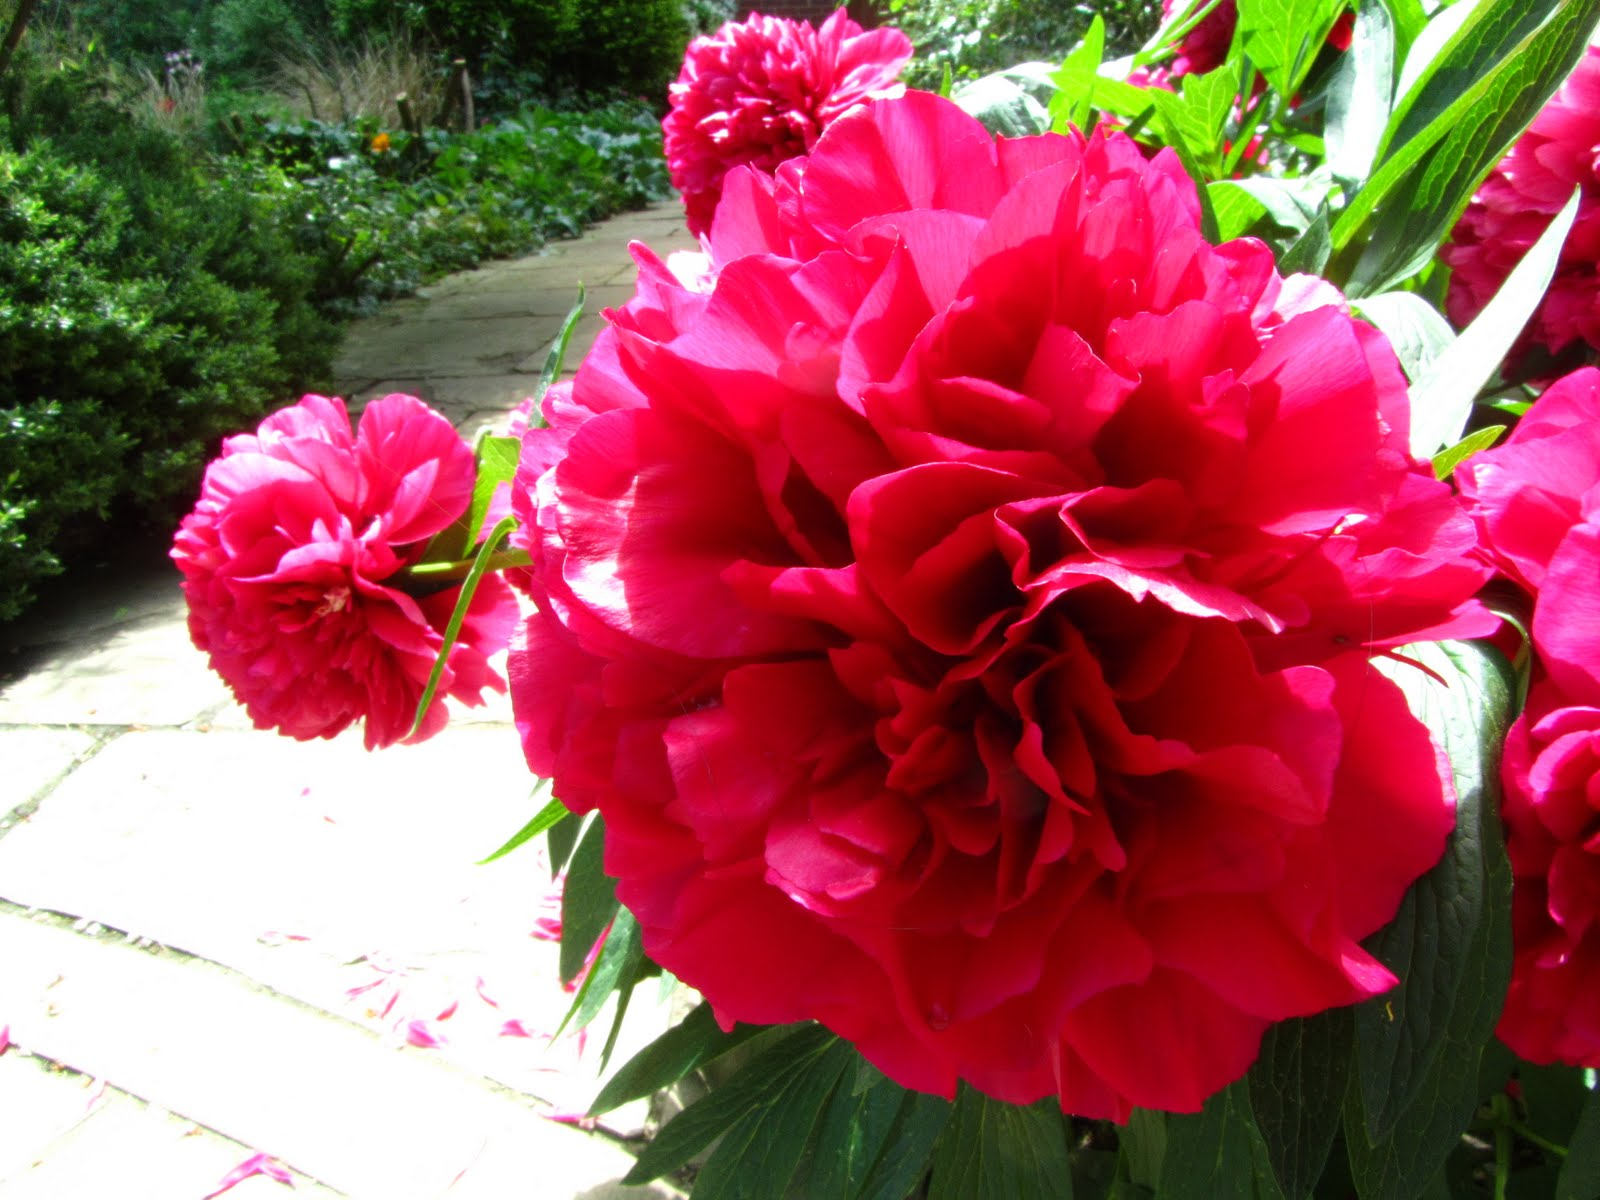 Red Flowers And Their Names